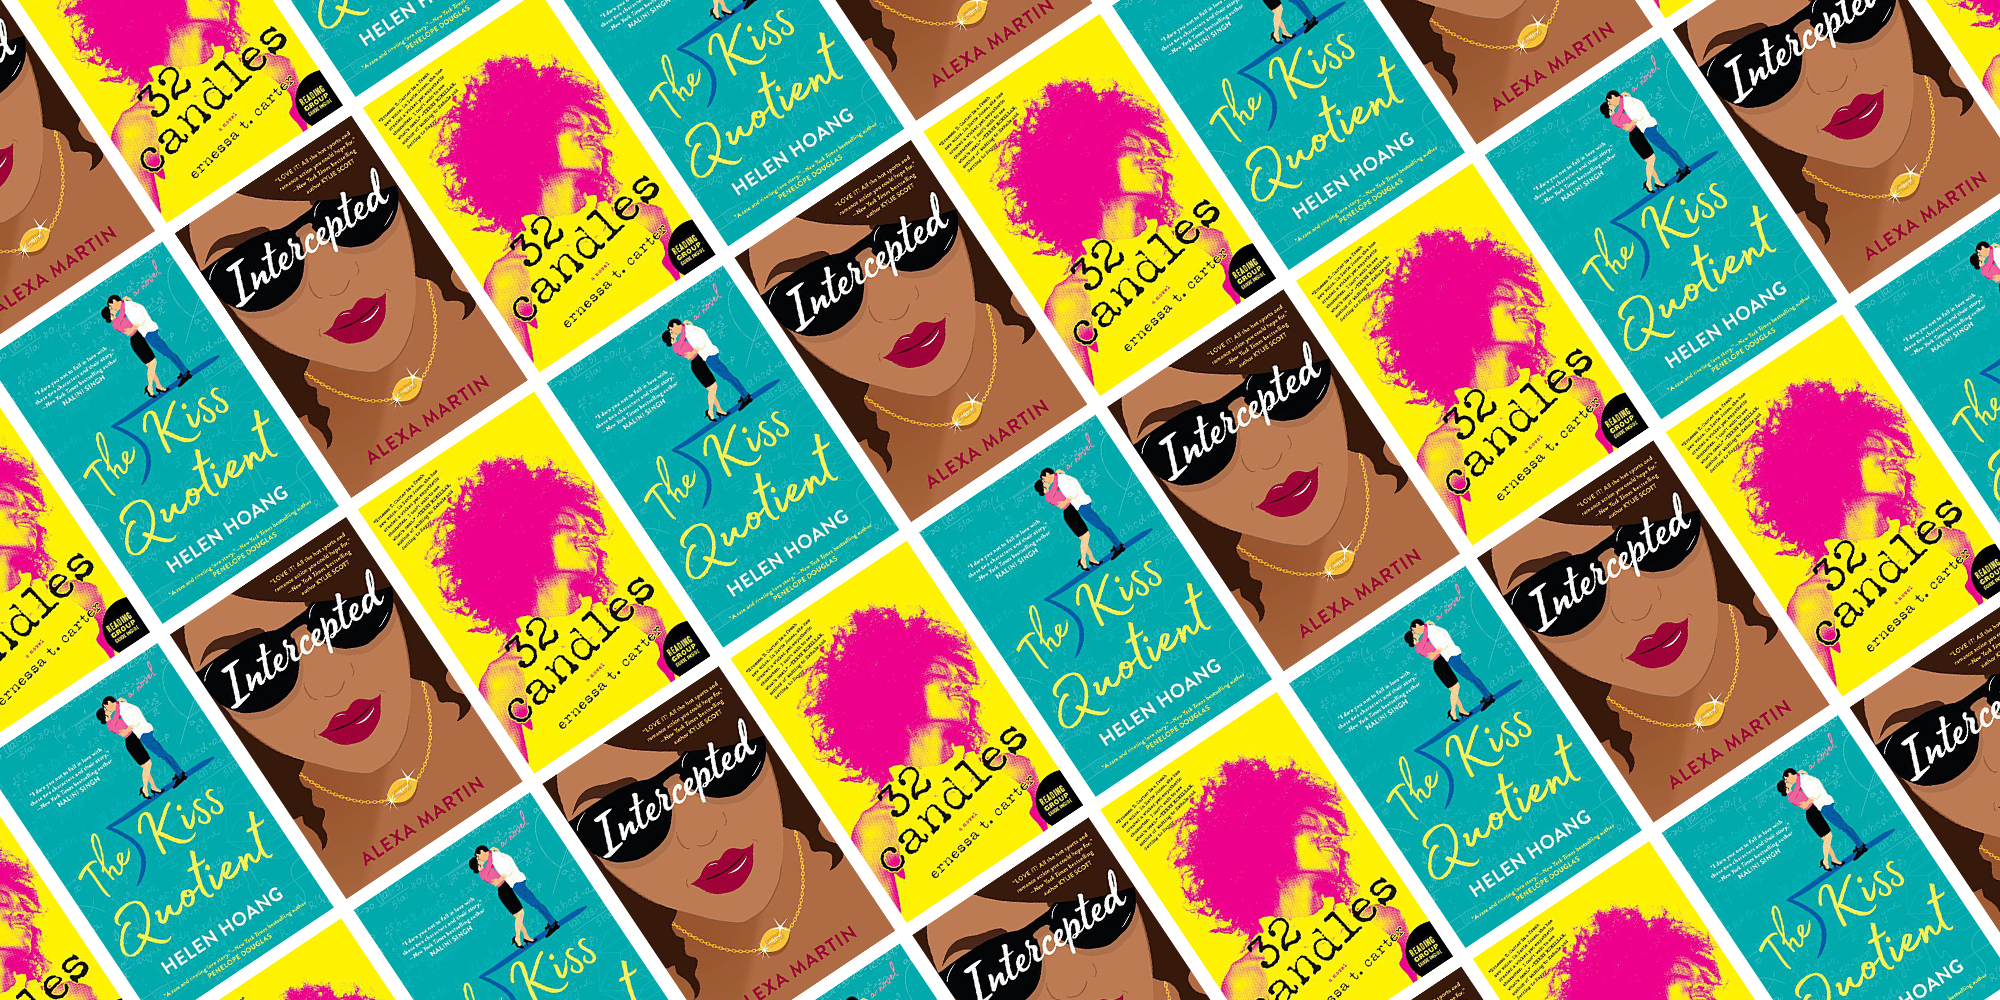 12 Best Romance Novels Of 2018 According To Author Jasmine Guillory